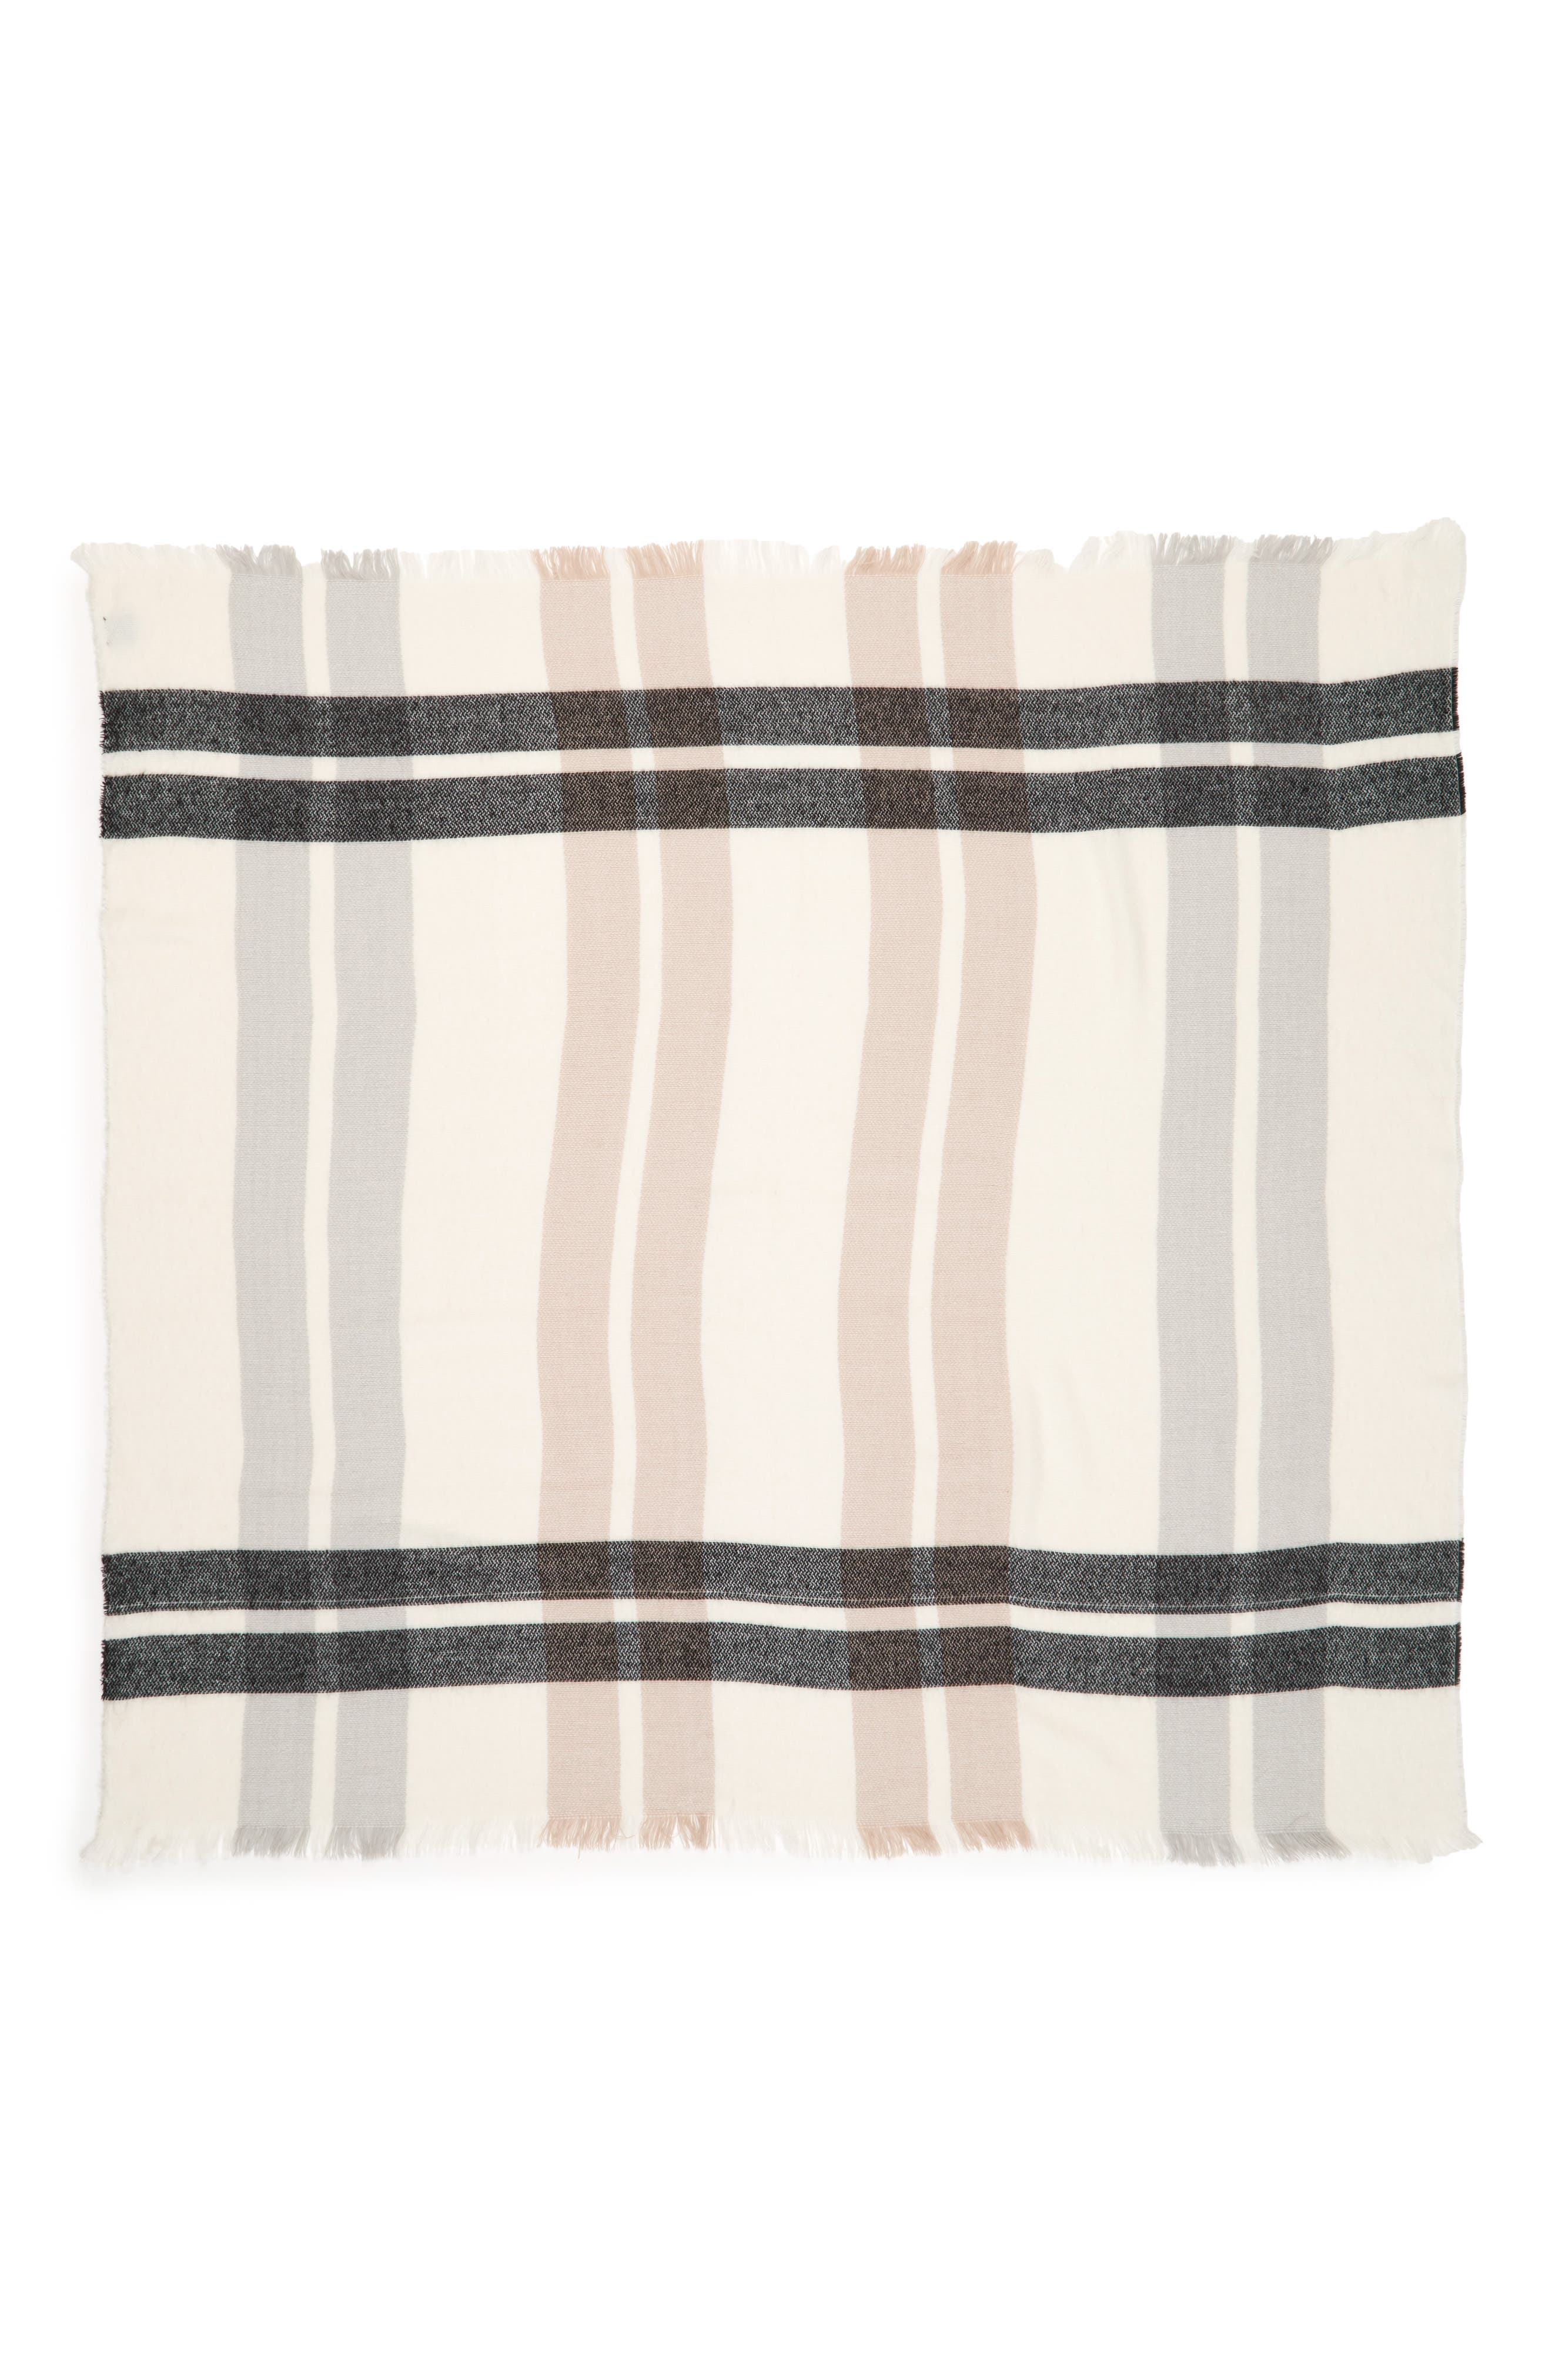 Accessory Collective Plaid Scarf,                             Alternate thumbnail 2, color,                             900